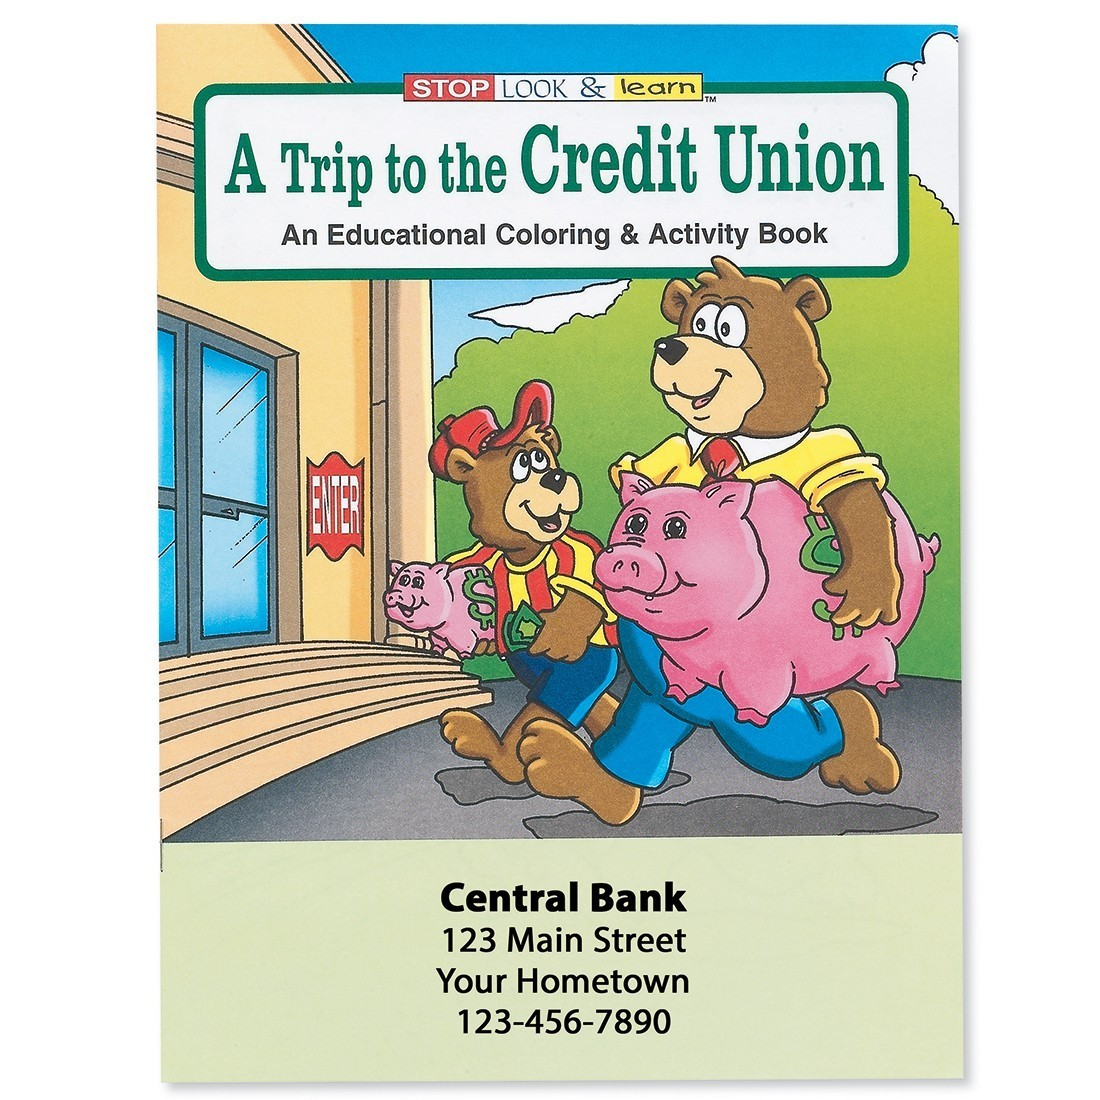 Custom Trip to Credit Union Coloring Books [image]